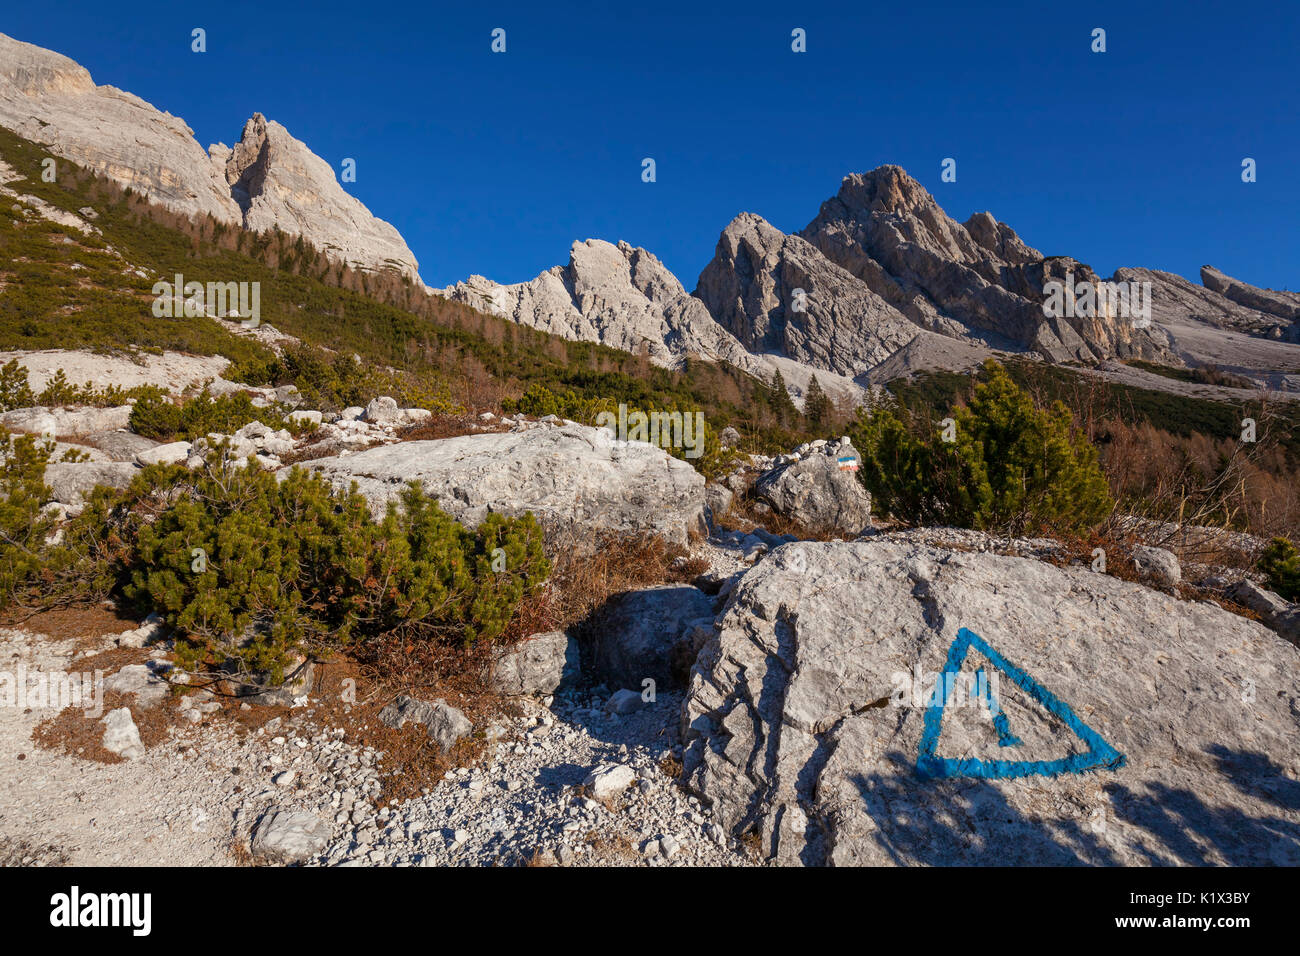 Europe, Italy, Veneto, Belluno, Agordino. The path of the Alta Via no. 1 at the foot of San Sebastiano and Tamer toward fork Moschesin, Dolomites. - Stock Image